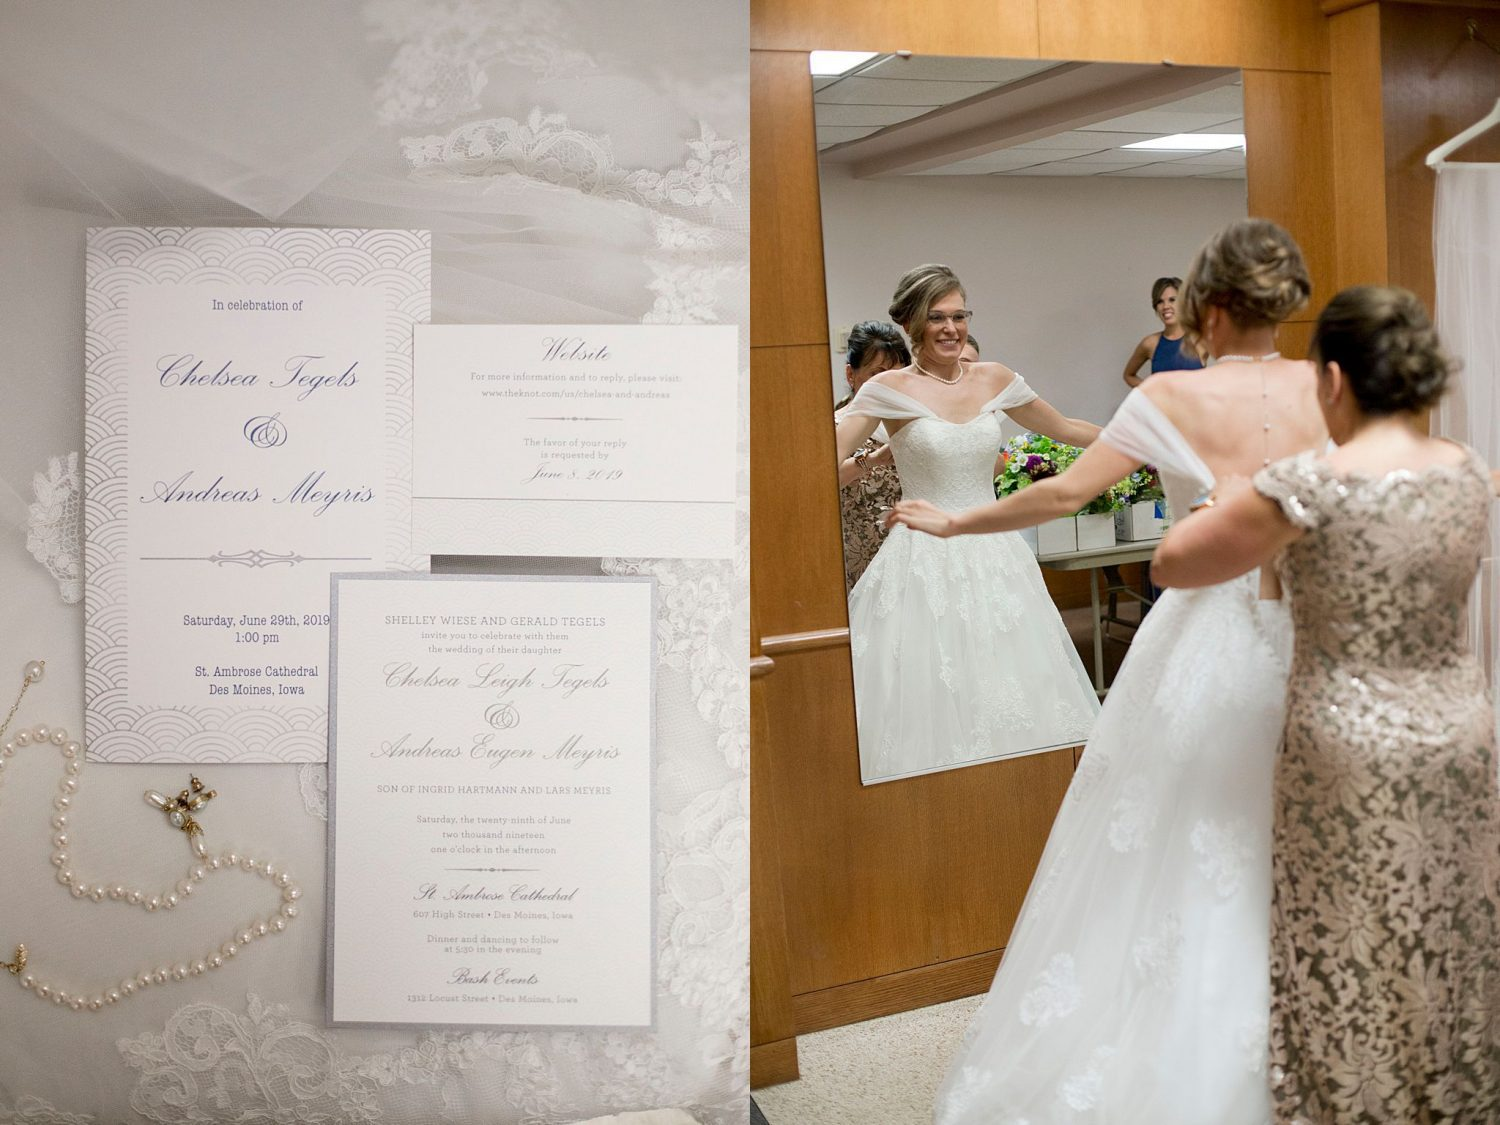 A closeup of the invitation suite and the bride smiling as her mom helps button her wedding gown.